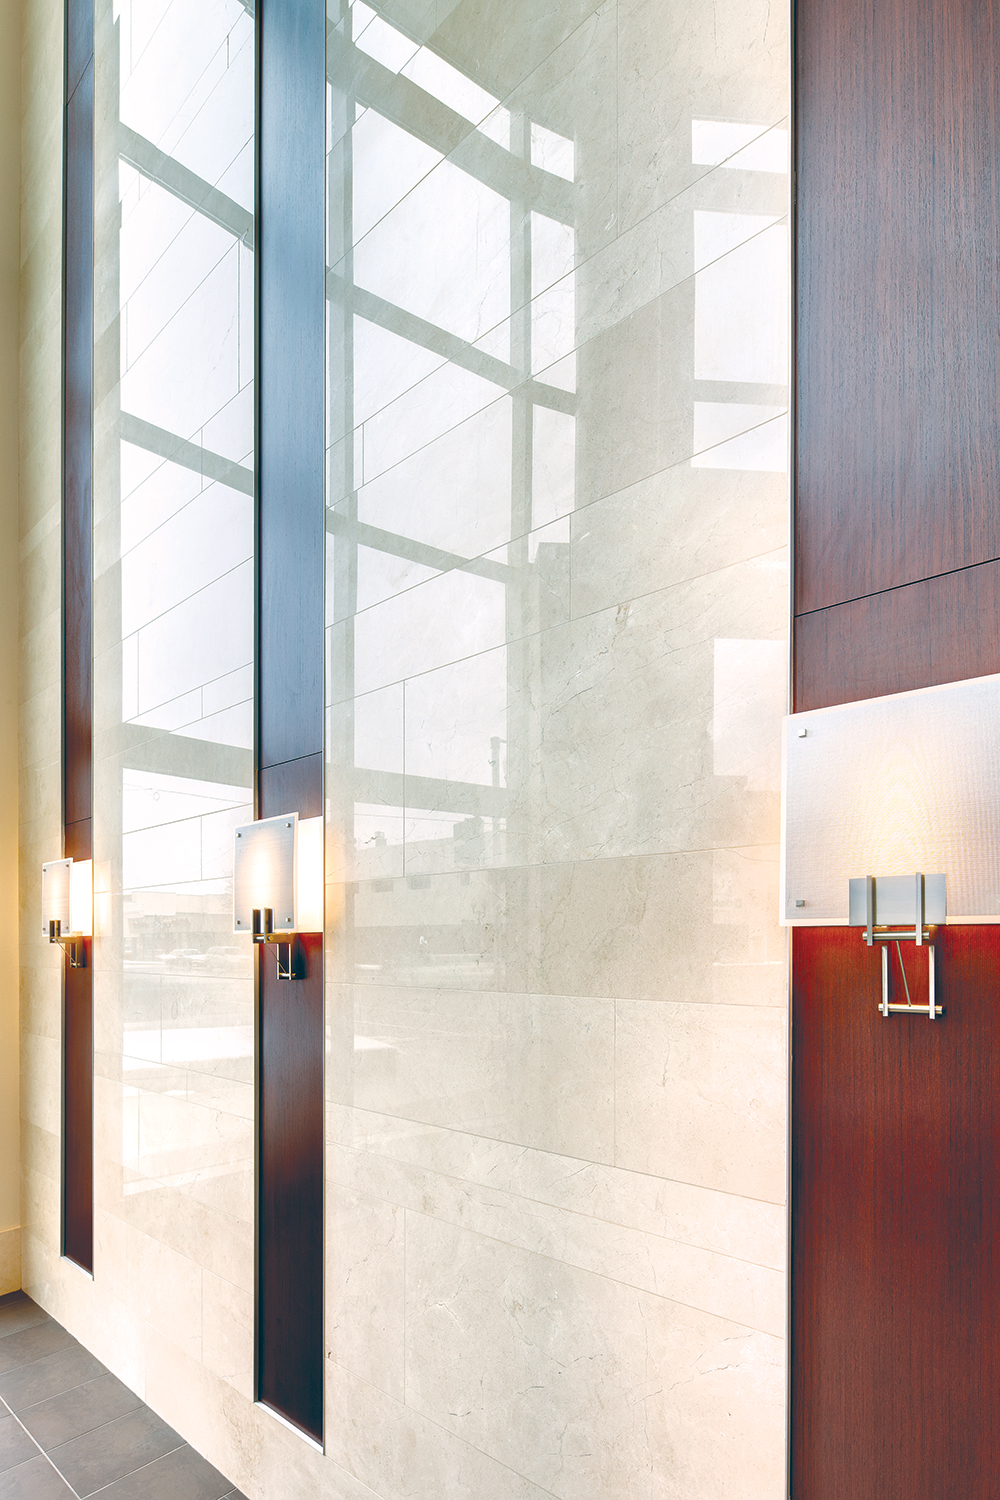 Easel wall sconces in the sleek entryway of a modern healthcare design application.